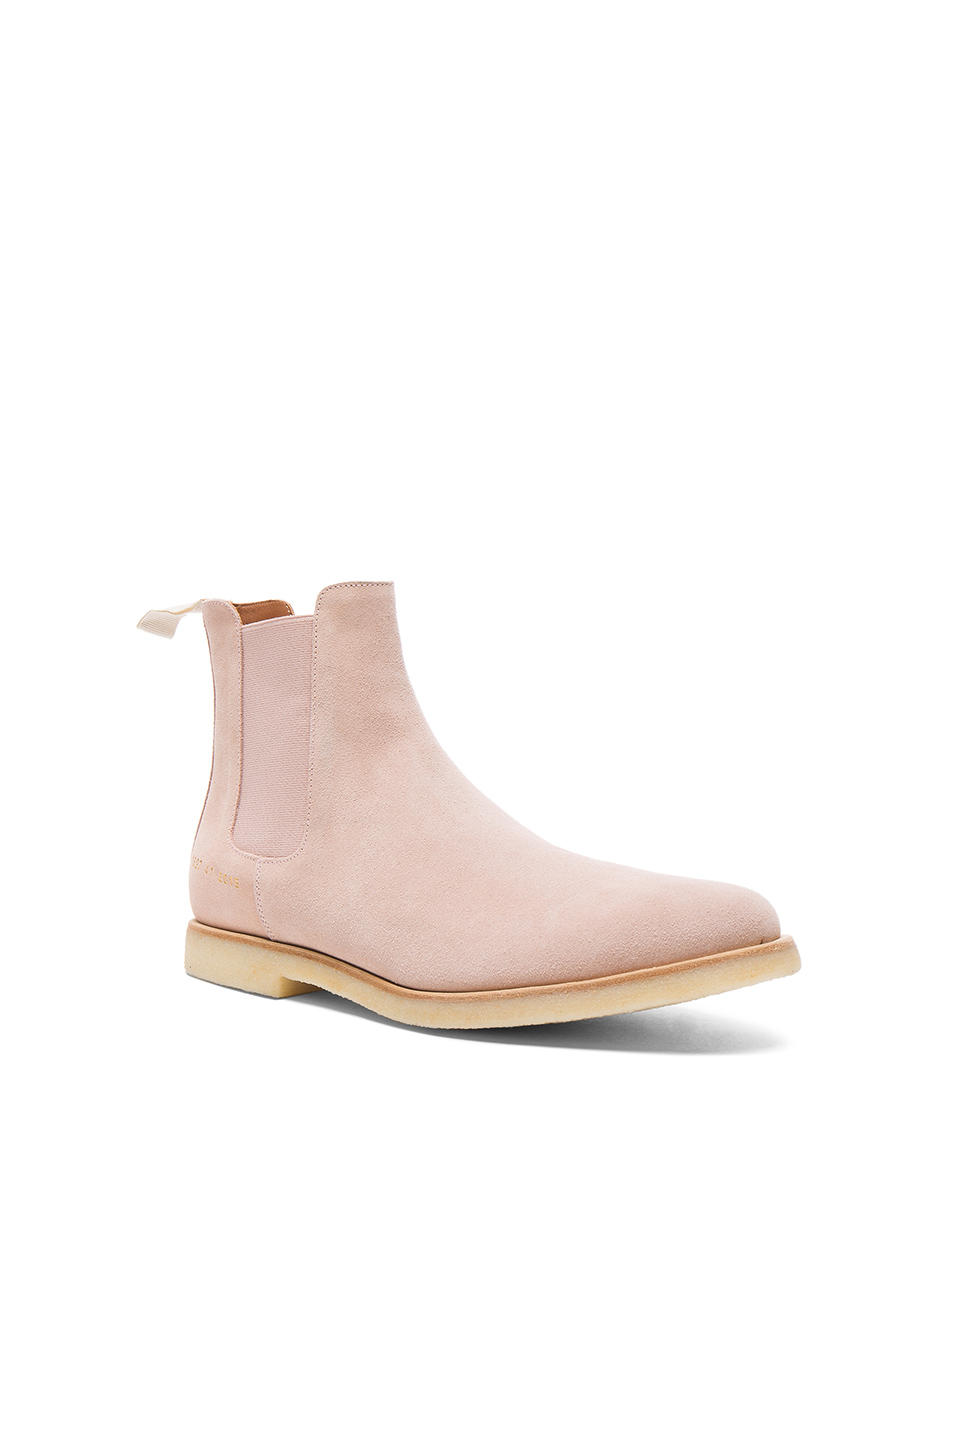 Common Projects Suede Chelsea Boots in Pink